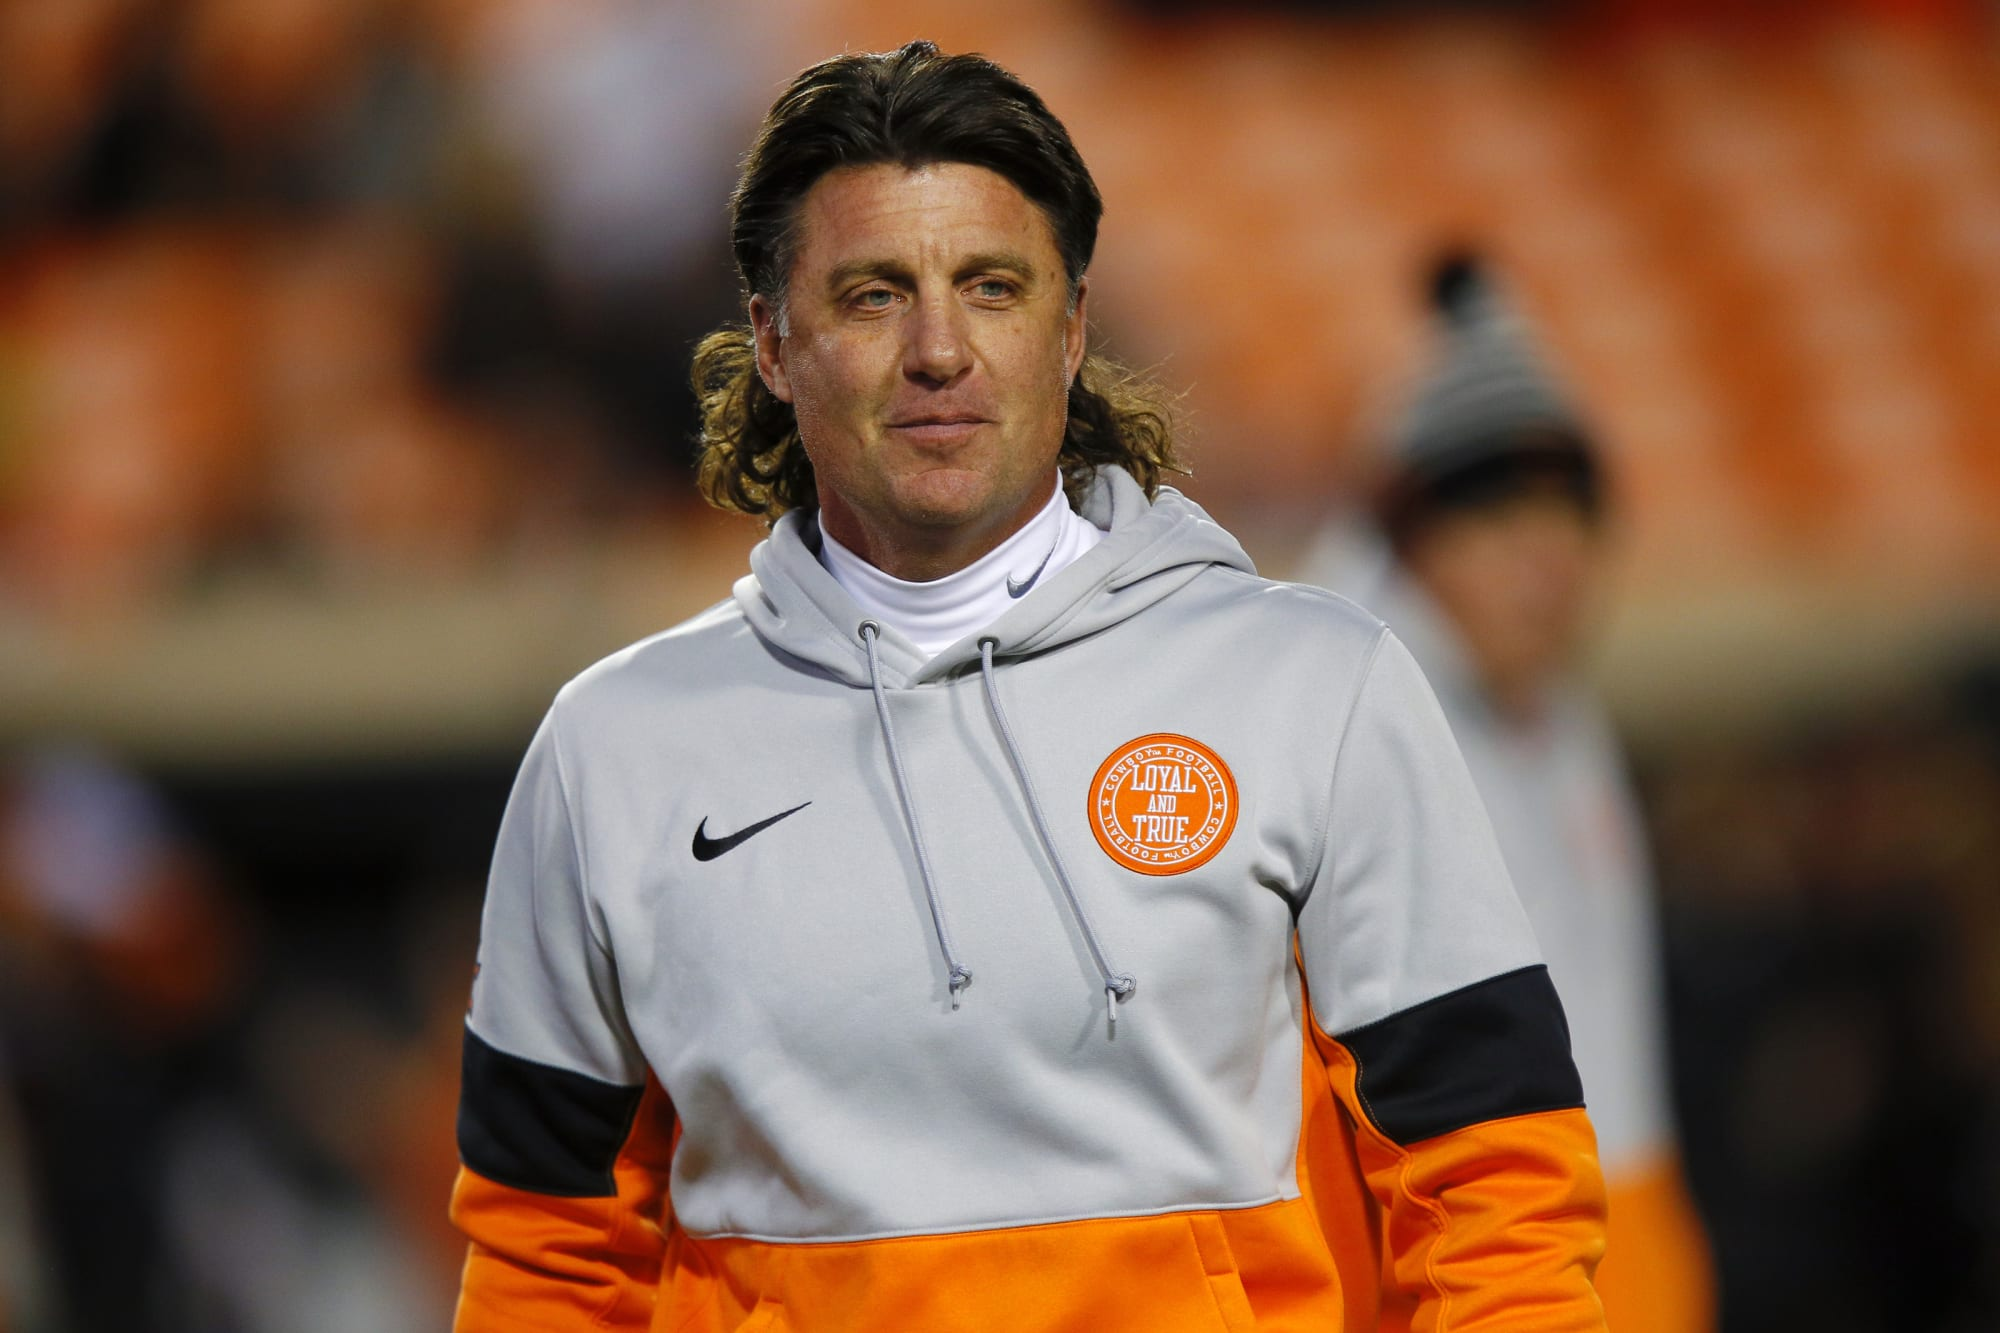 Mike Gundy got rid of his trademark mullet again … for now (photo)